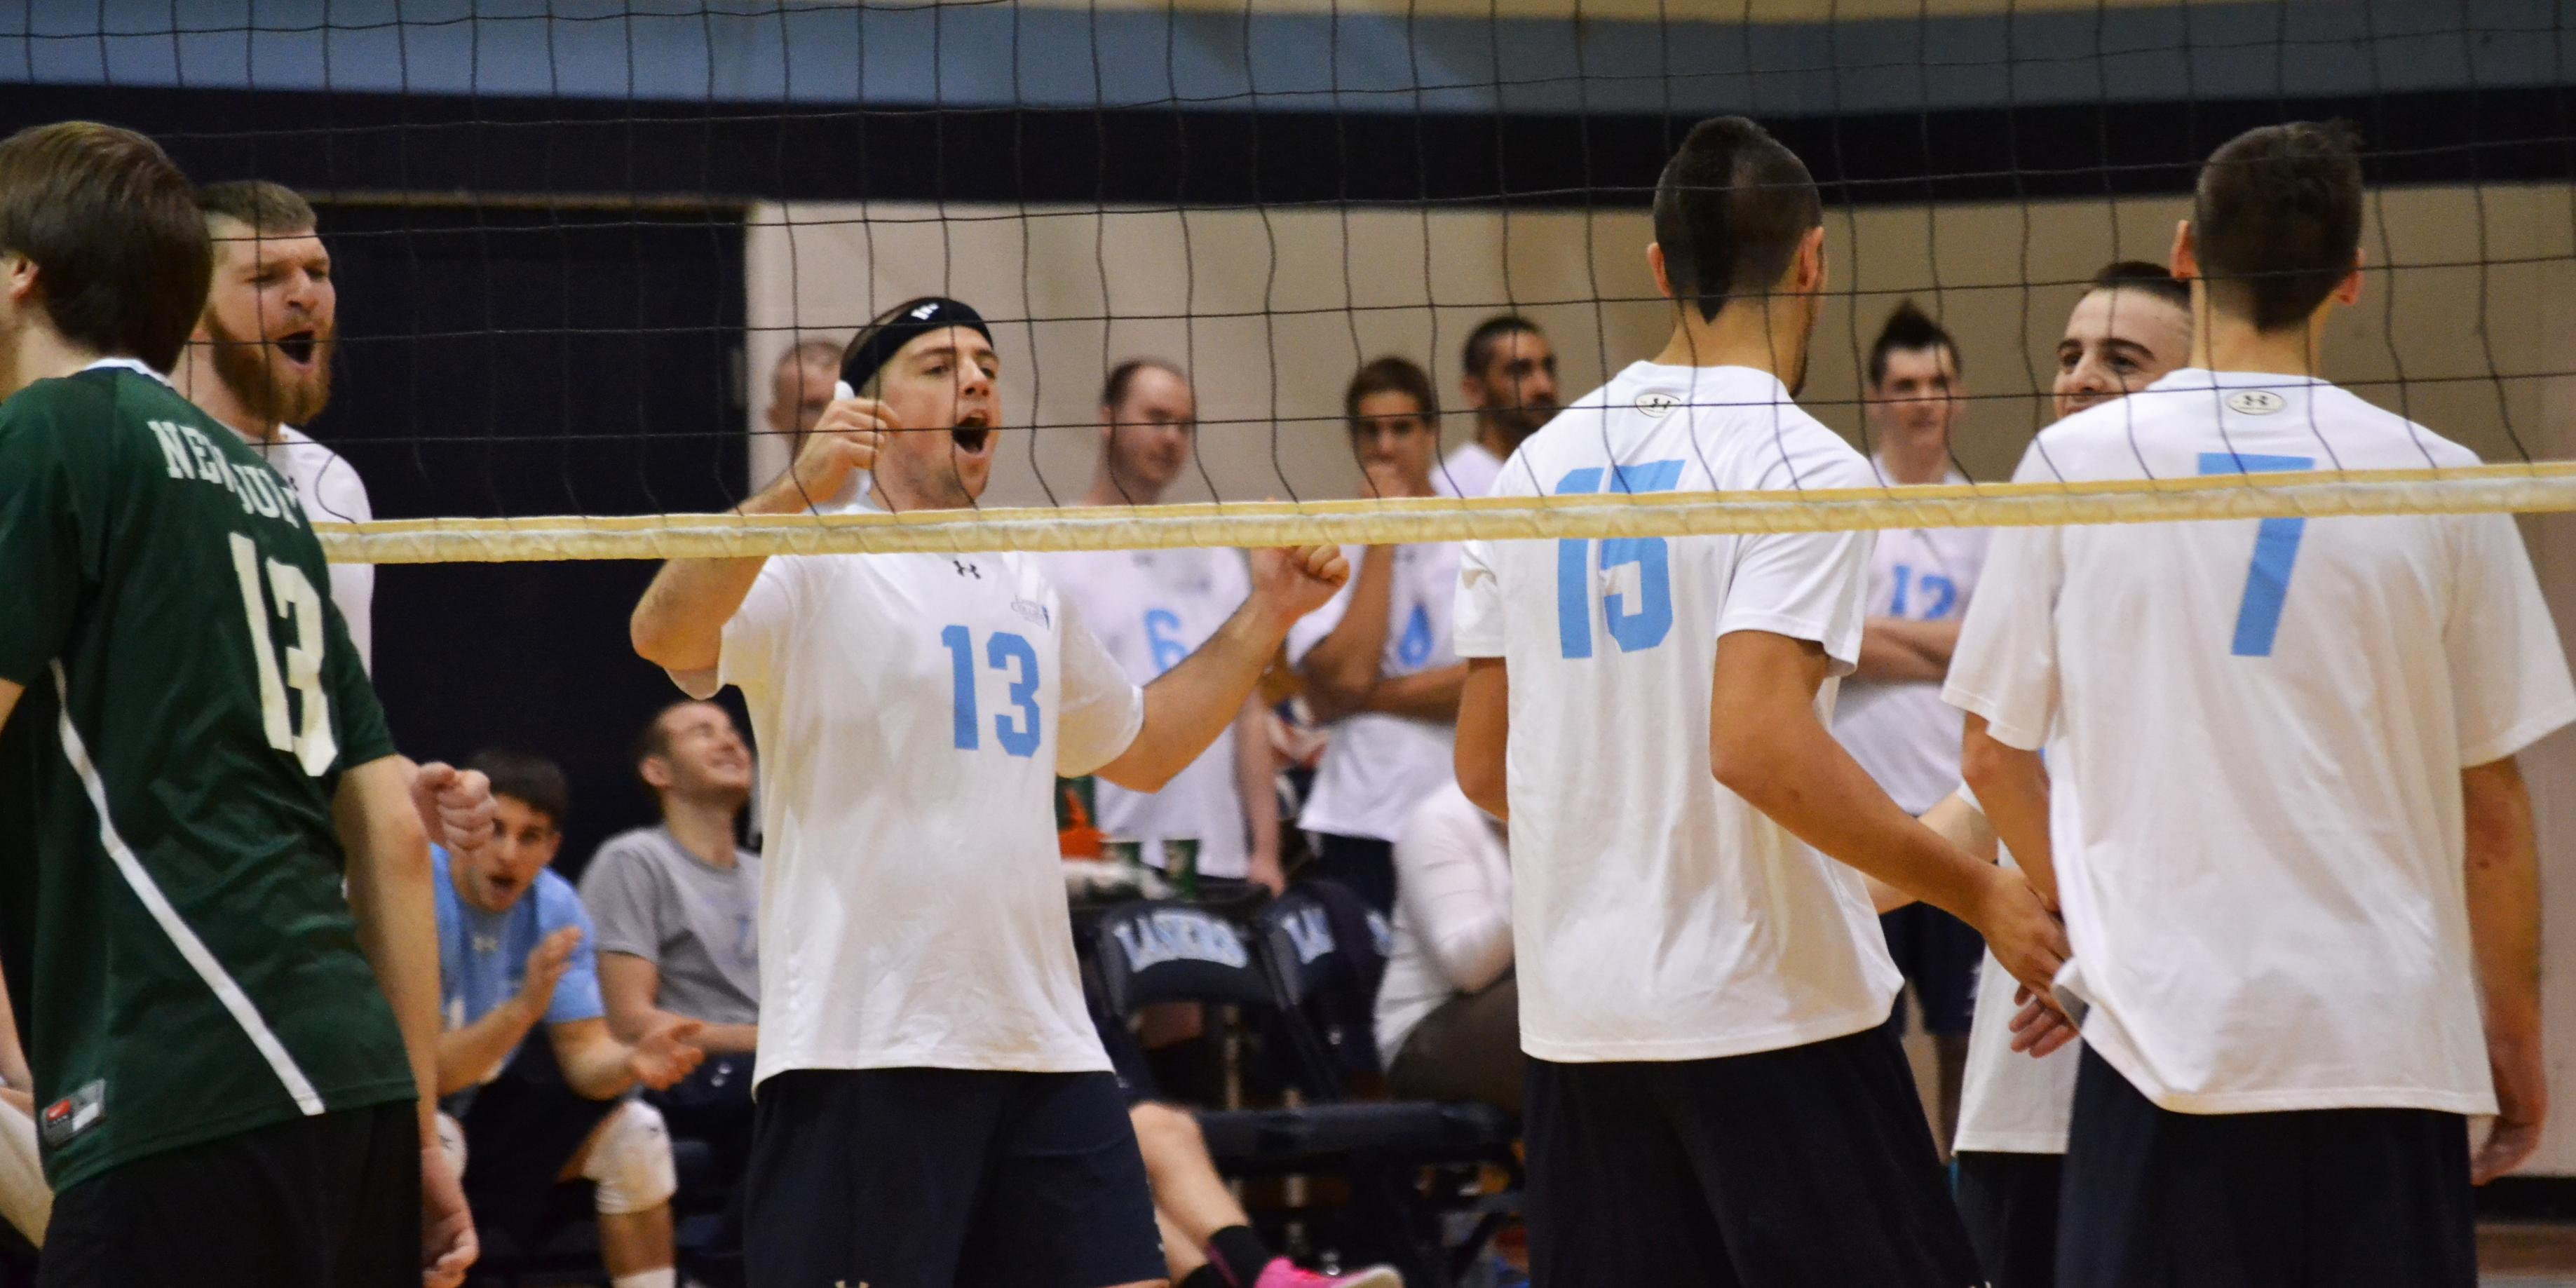 Men's Volleyball Takes 3-0 Victory Over Newbury in NH Invite